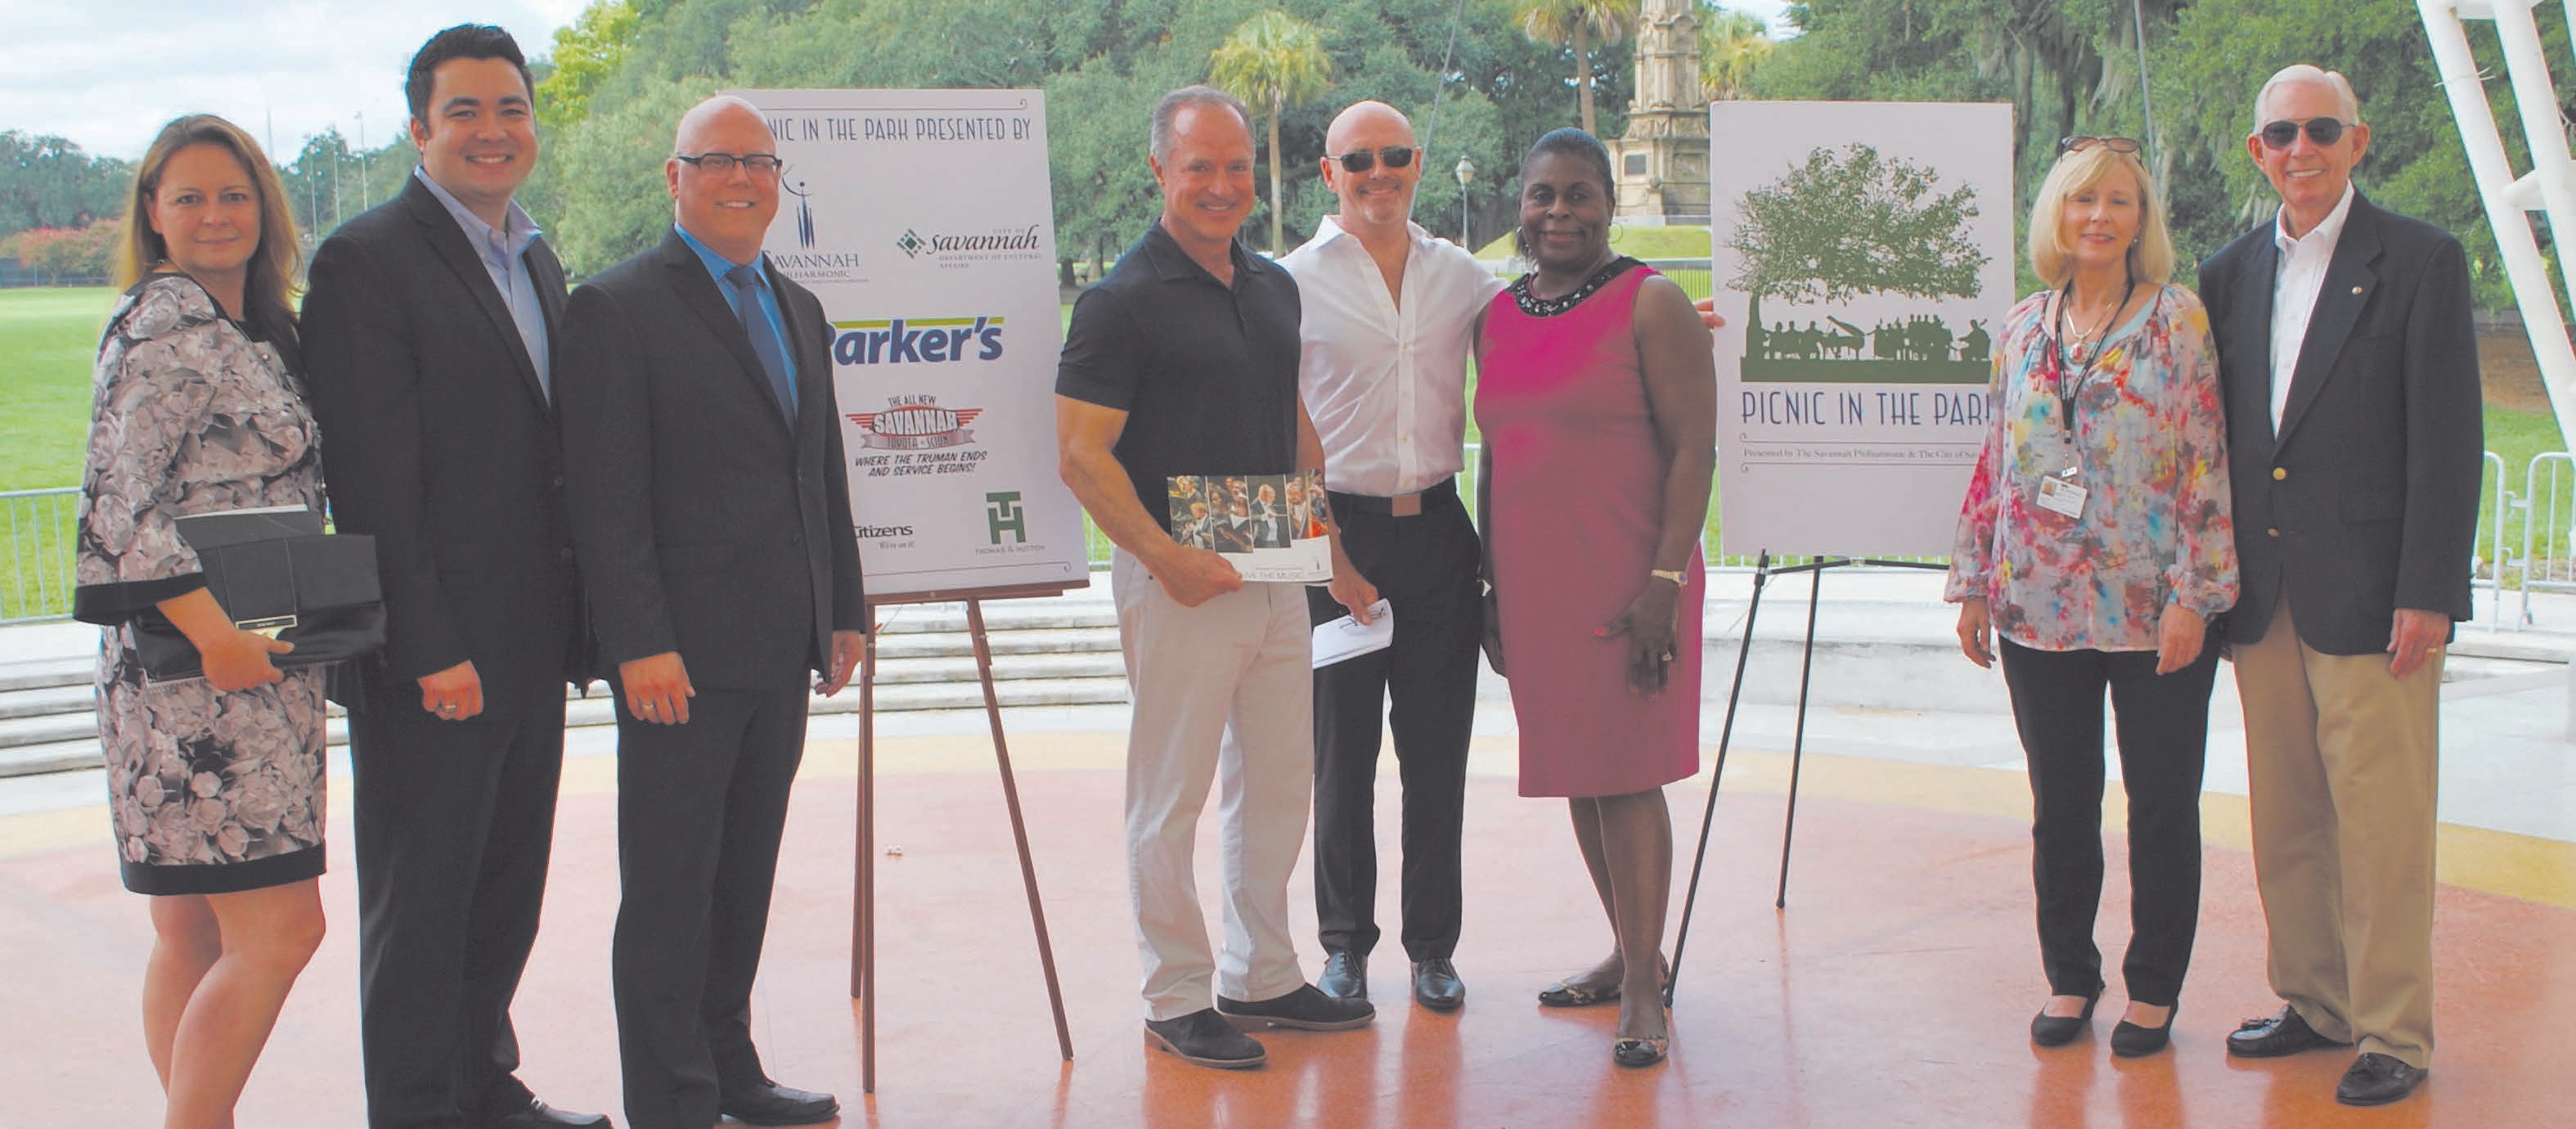 Michele Purington, WSAV; Mike Taft, Toyota of Savannah; Robert Rund, Savannah Philharmonic; Greg Parker, The Parker Companies; Peter Shannon, Savannah Philharmonic; Carol Bell, City of Savannah Alderman; Eileen Baker, City of Savannah Department of Cultural Affairs; Ron Morris, Savannah Philharmonic board chairman